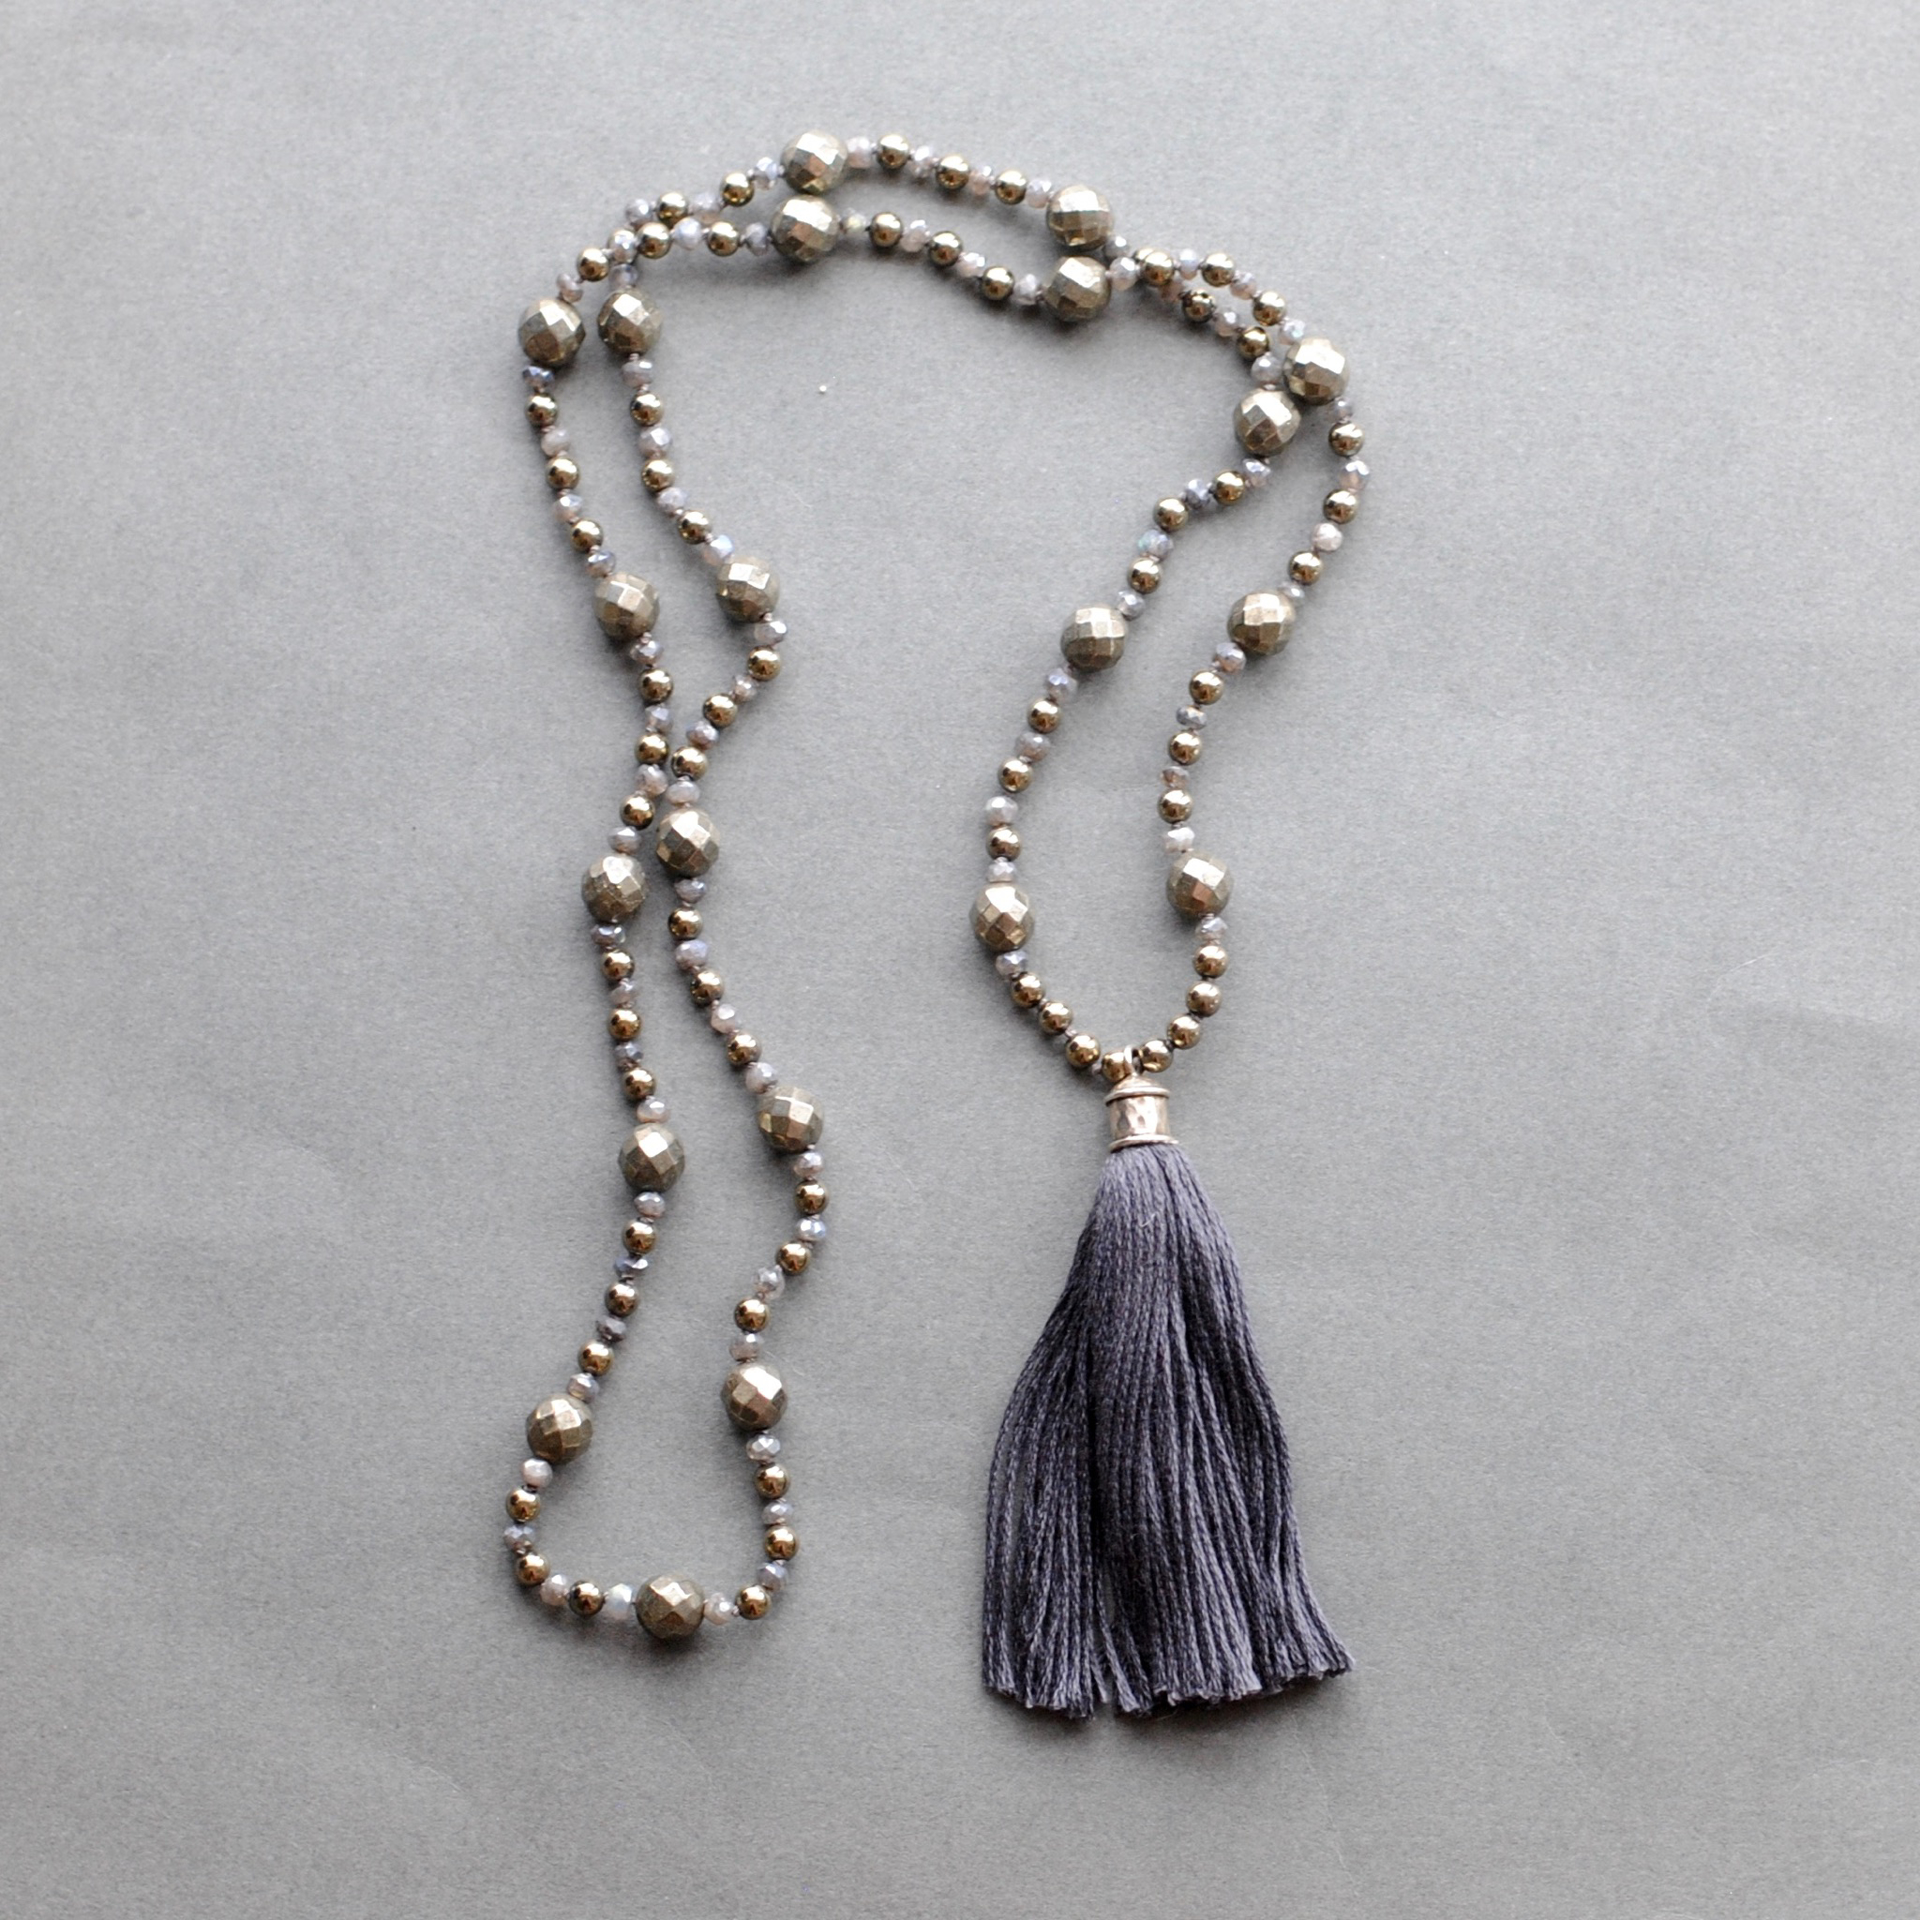 N016 Necklace by Sam Taylor